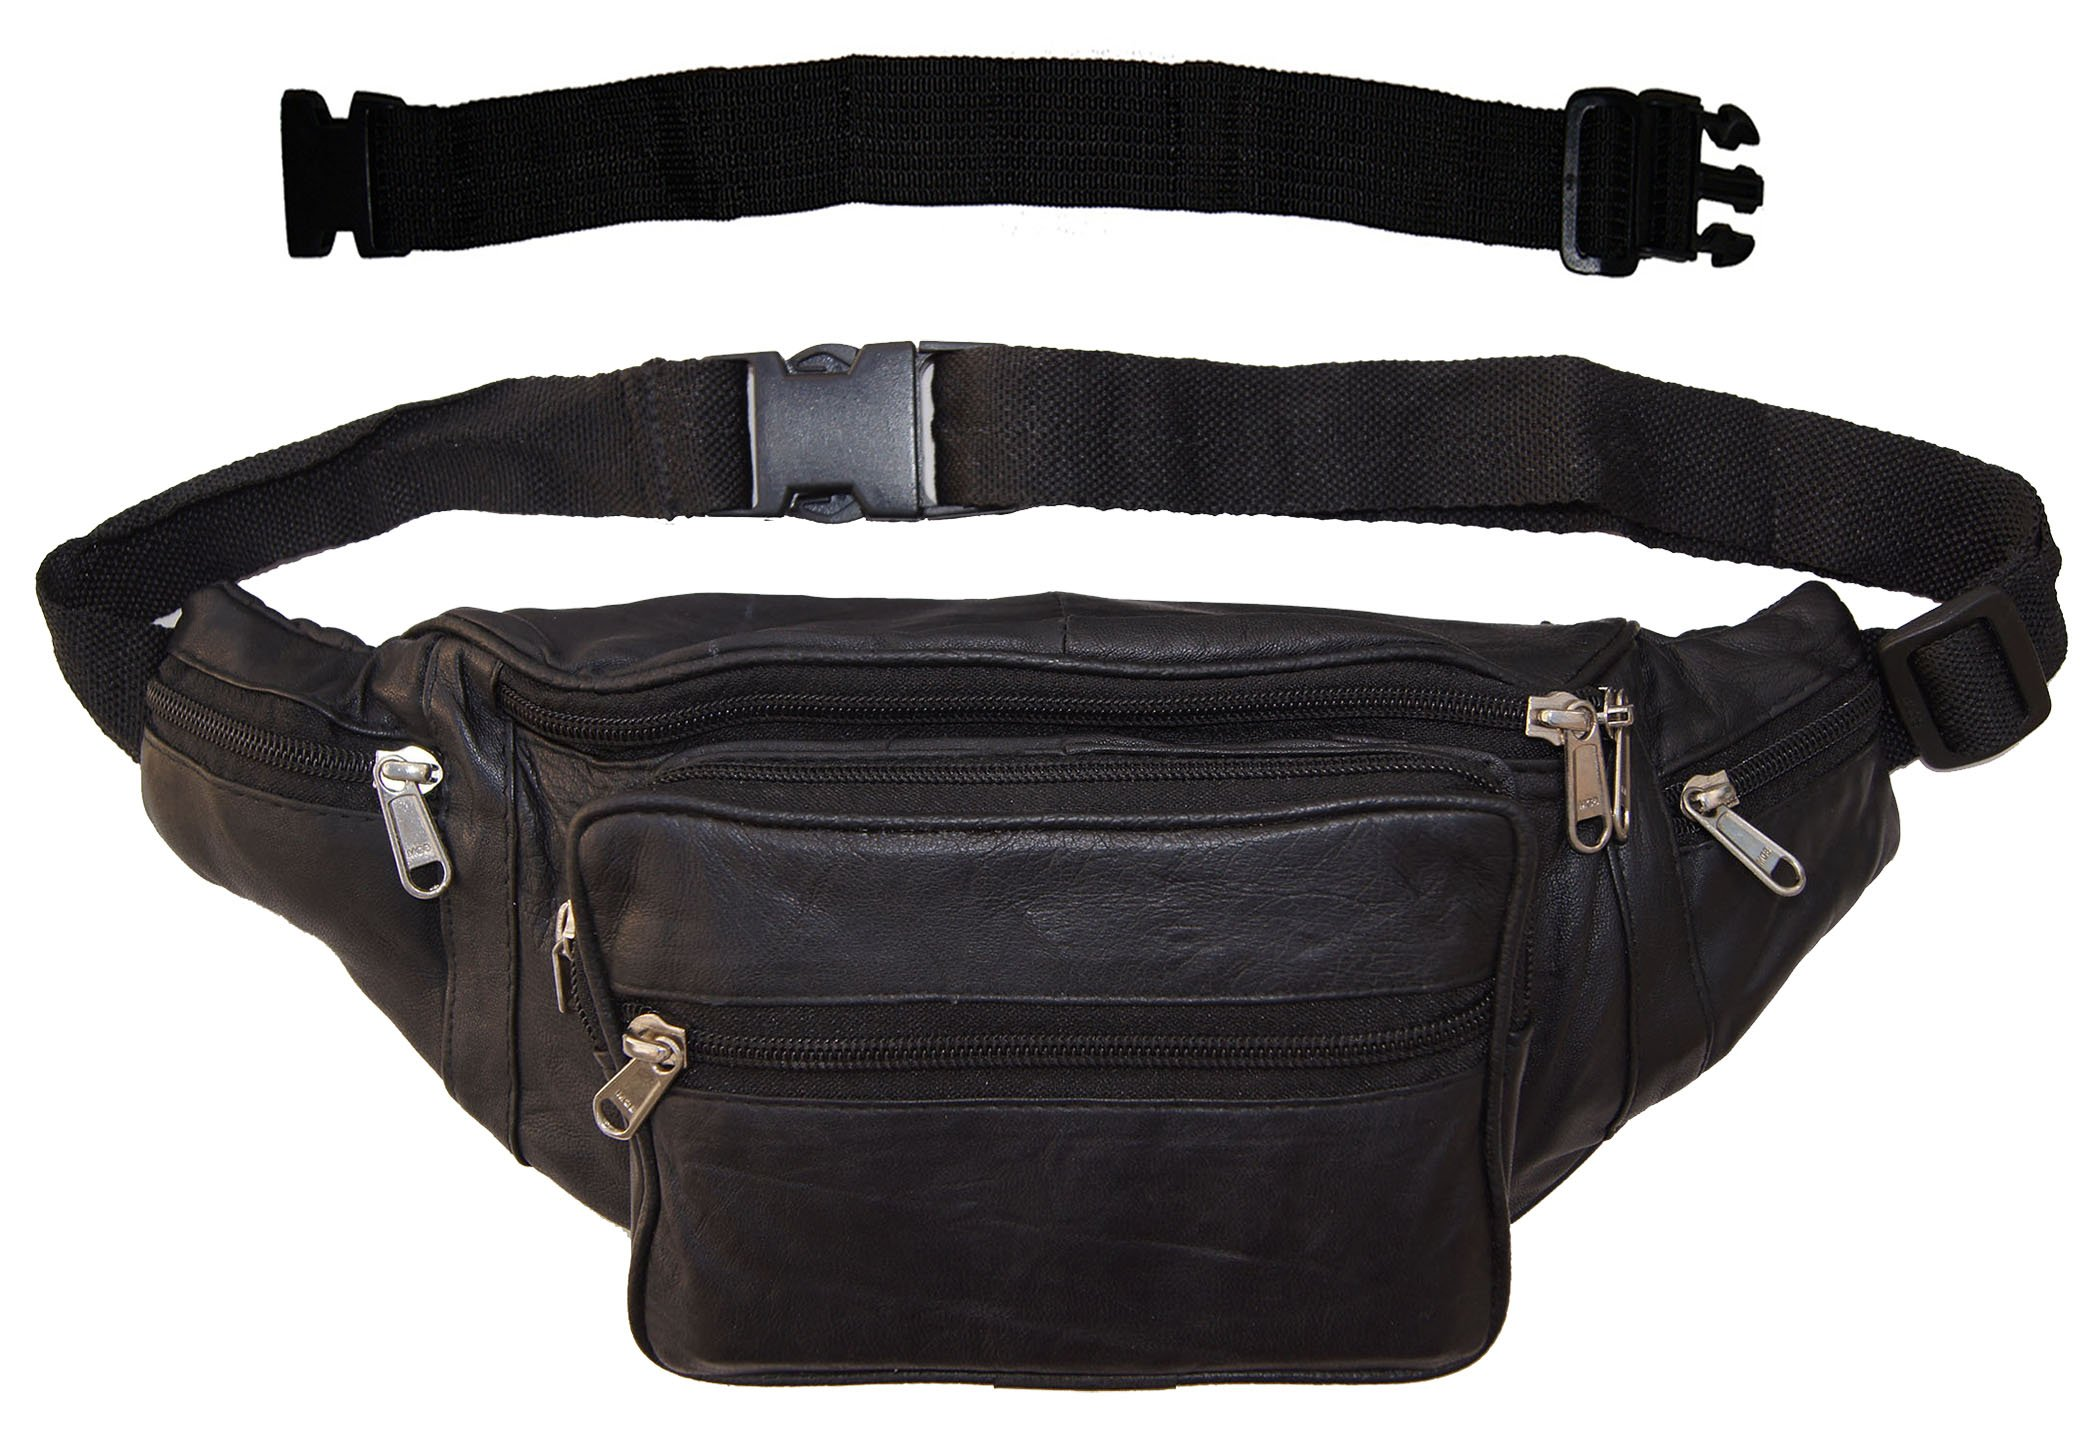 AG Wallets Biker's Leather Fanny Pack Pouch With 18'' Extension